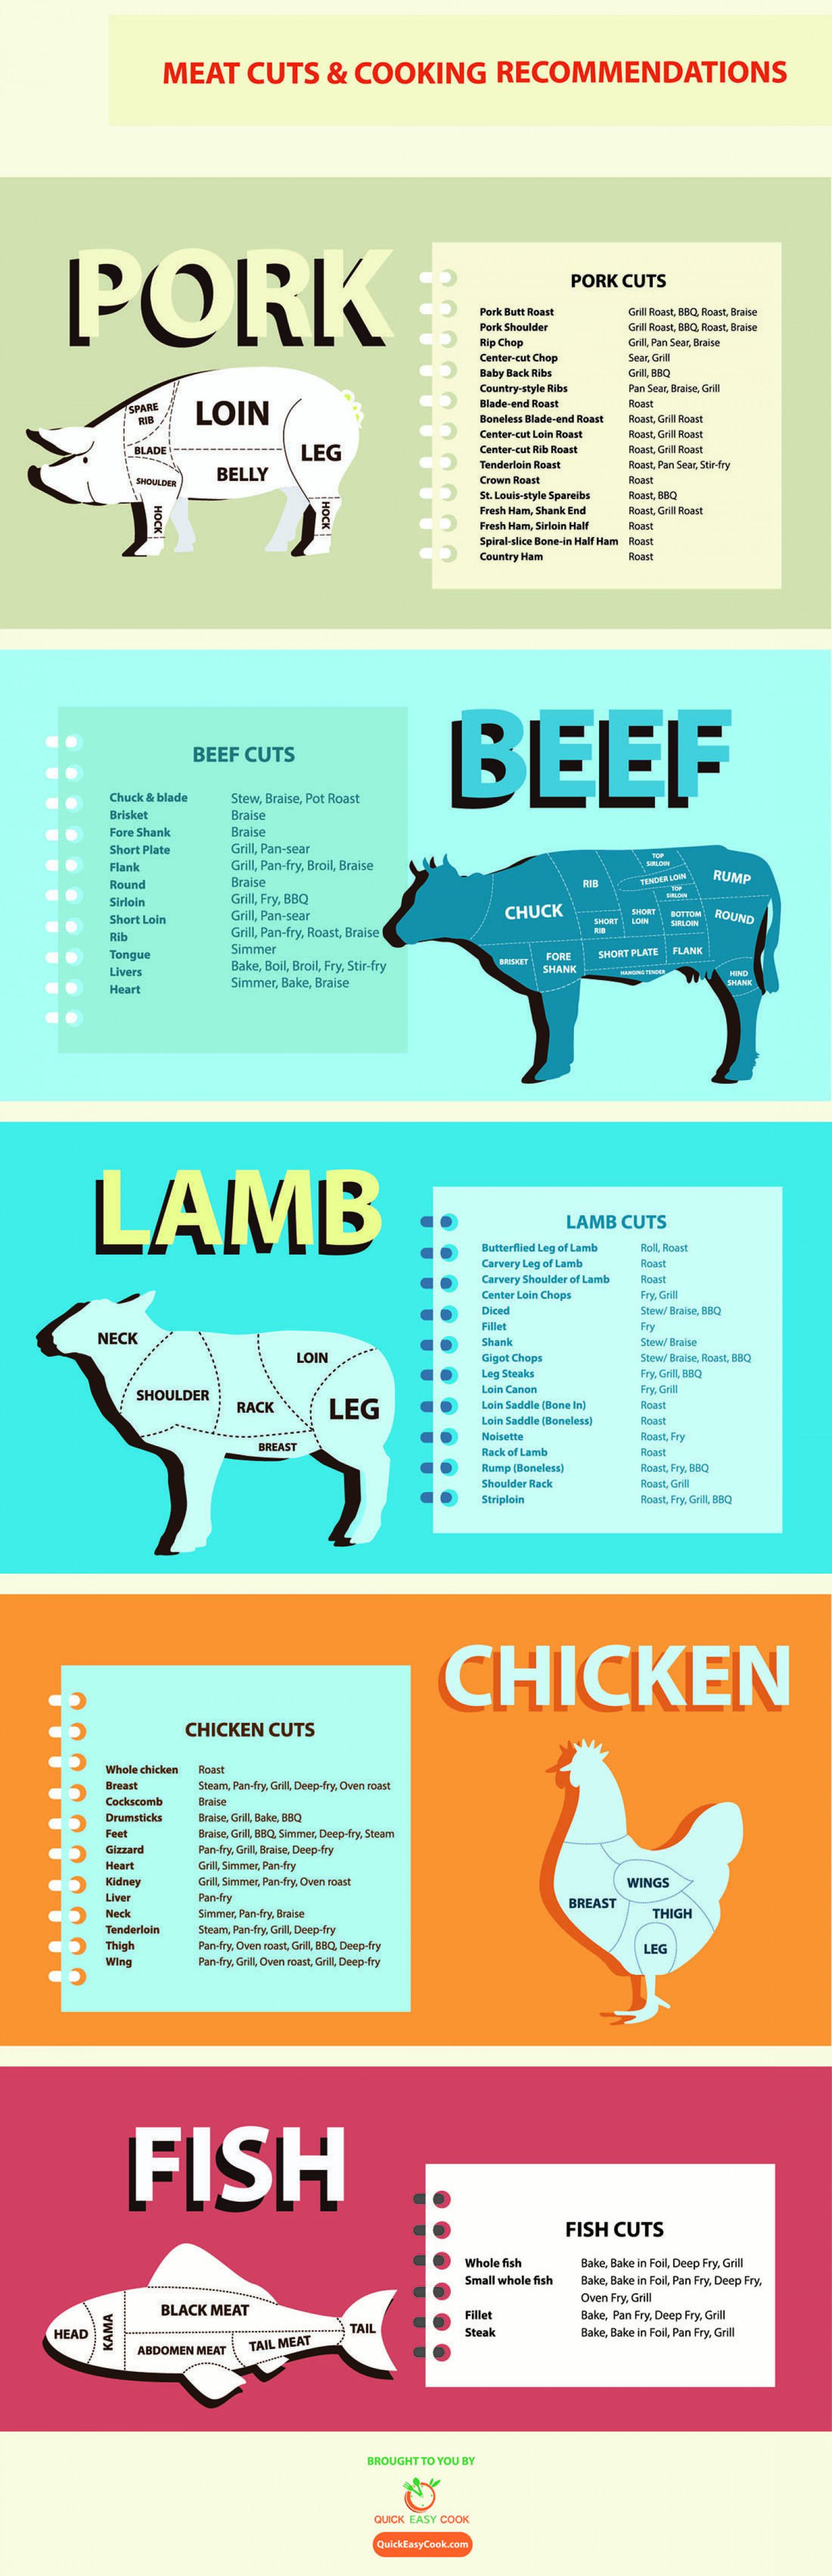 Meat Cuts & 5 Basic Cooking Techniques Infographic